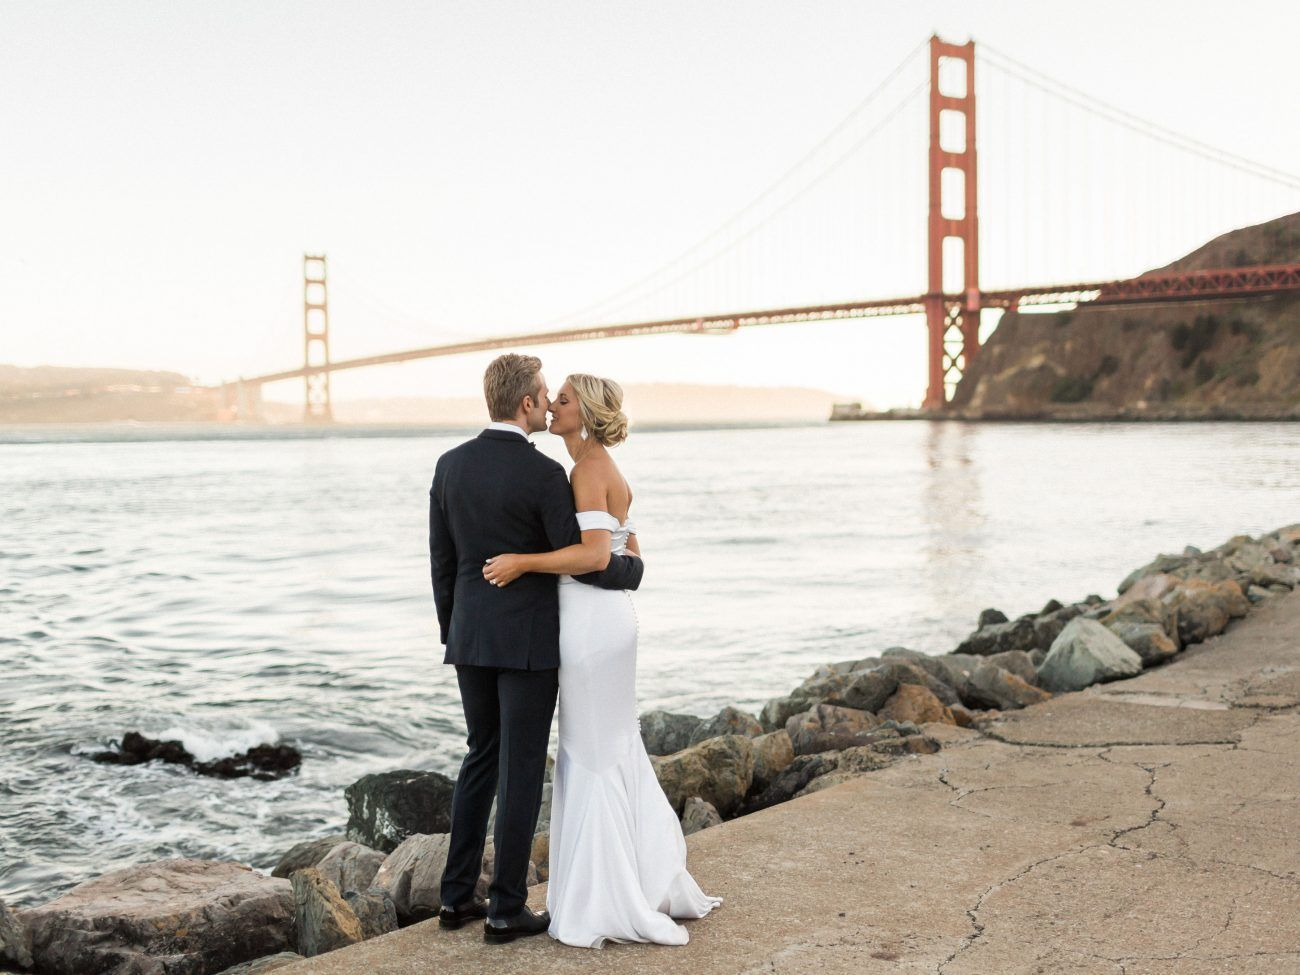 Glamorous Waterfront San Francisco Wedding Simply Styled With Succulents and Eucalyptus